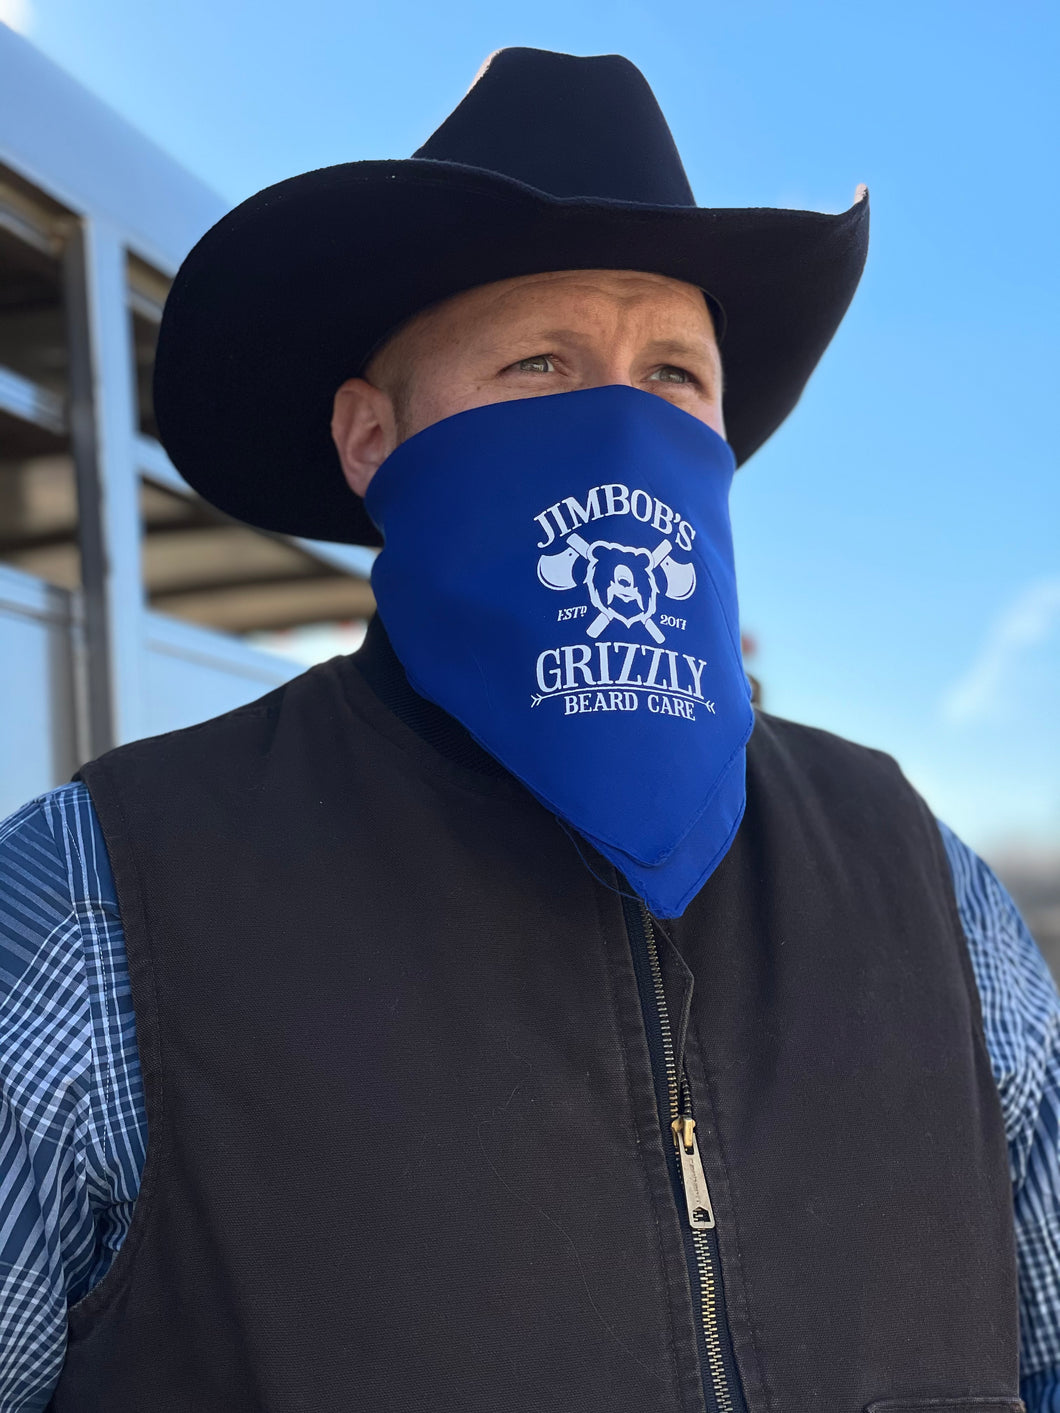 Grizzly Mark Bandanas